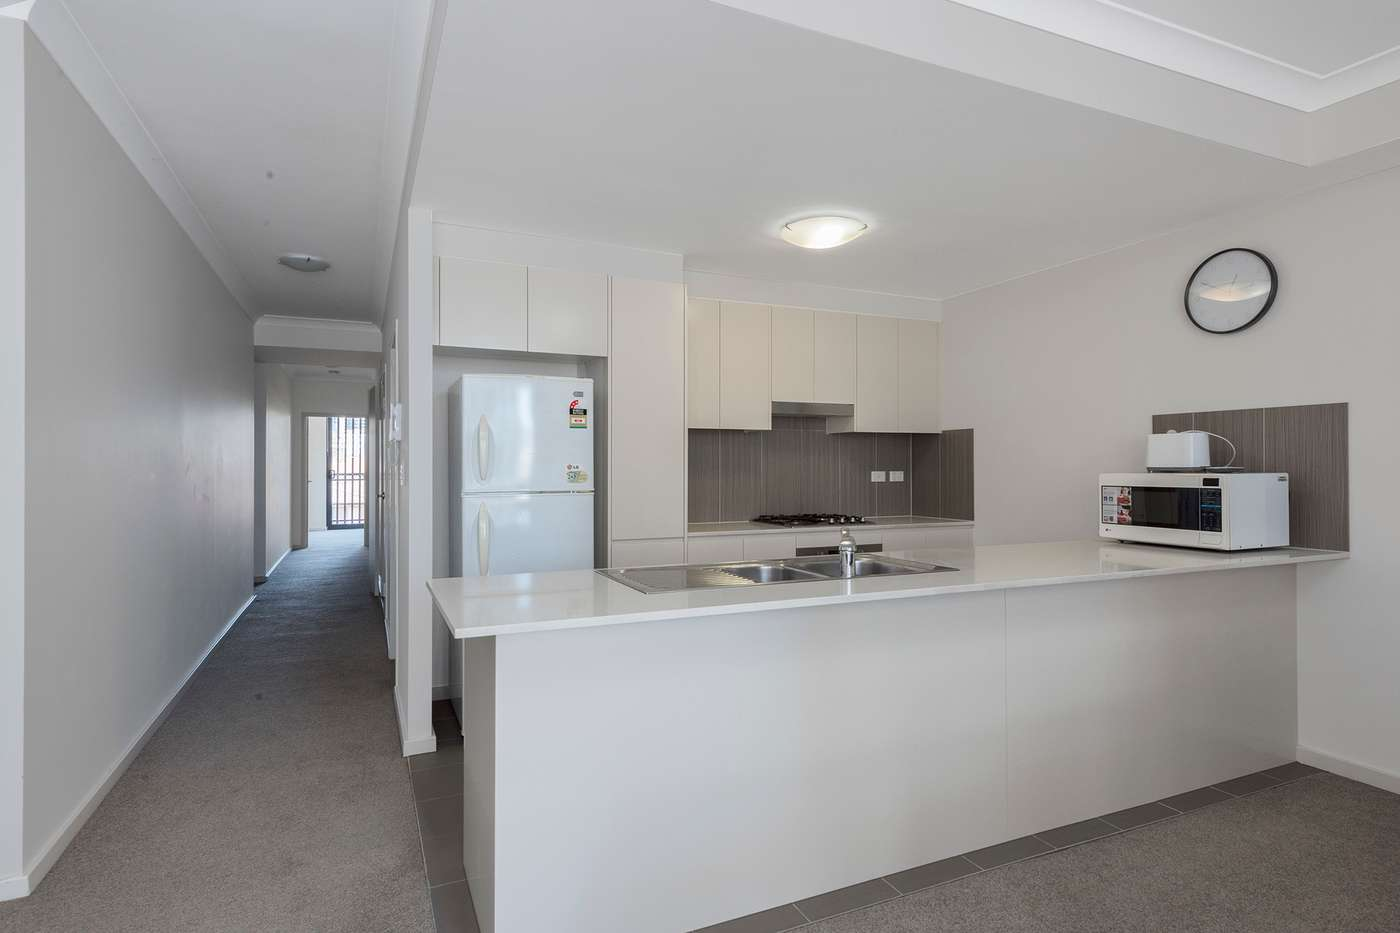 Main view of Homely apartment listing, 39/69A-71 Elizabeth Street, Liverpool, NSW 2170